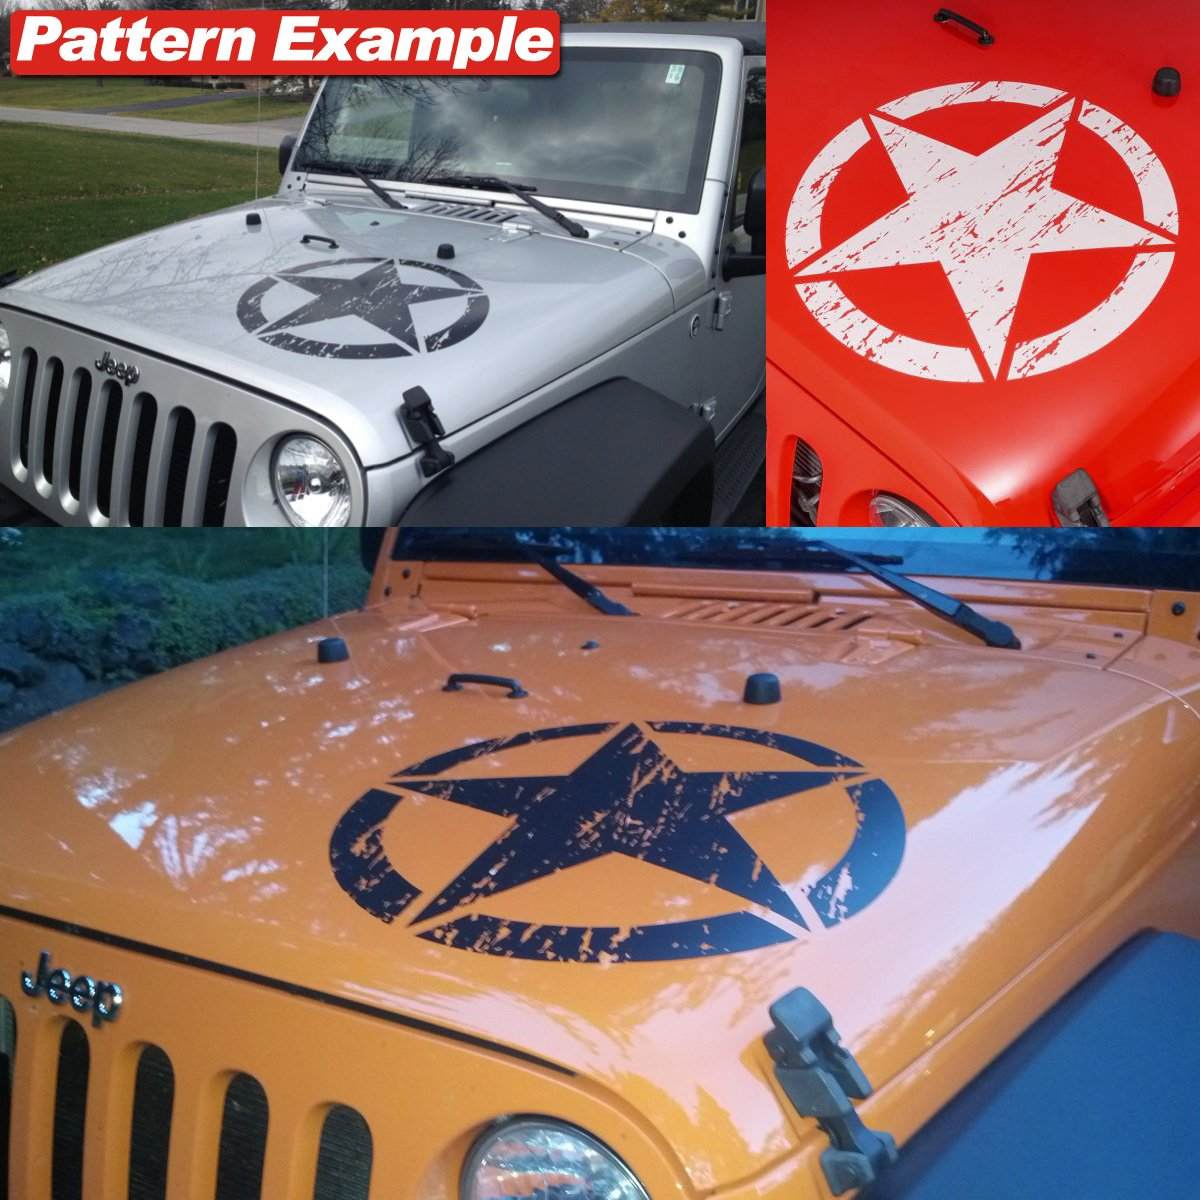 Jeep Wrangler Freedom Edition Star Hood Decal Sticker Matte - Custom windo decals for jeepsjeep hood decals and stickers custom and replica jeep decals now